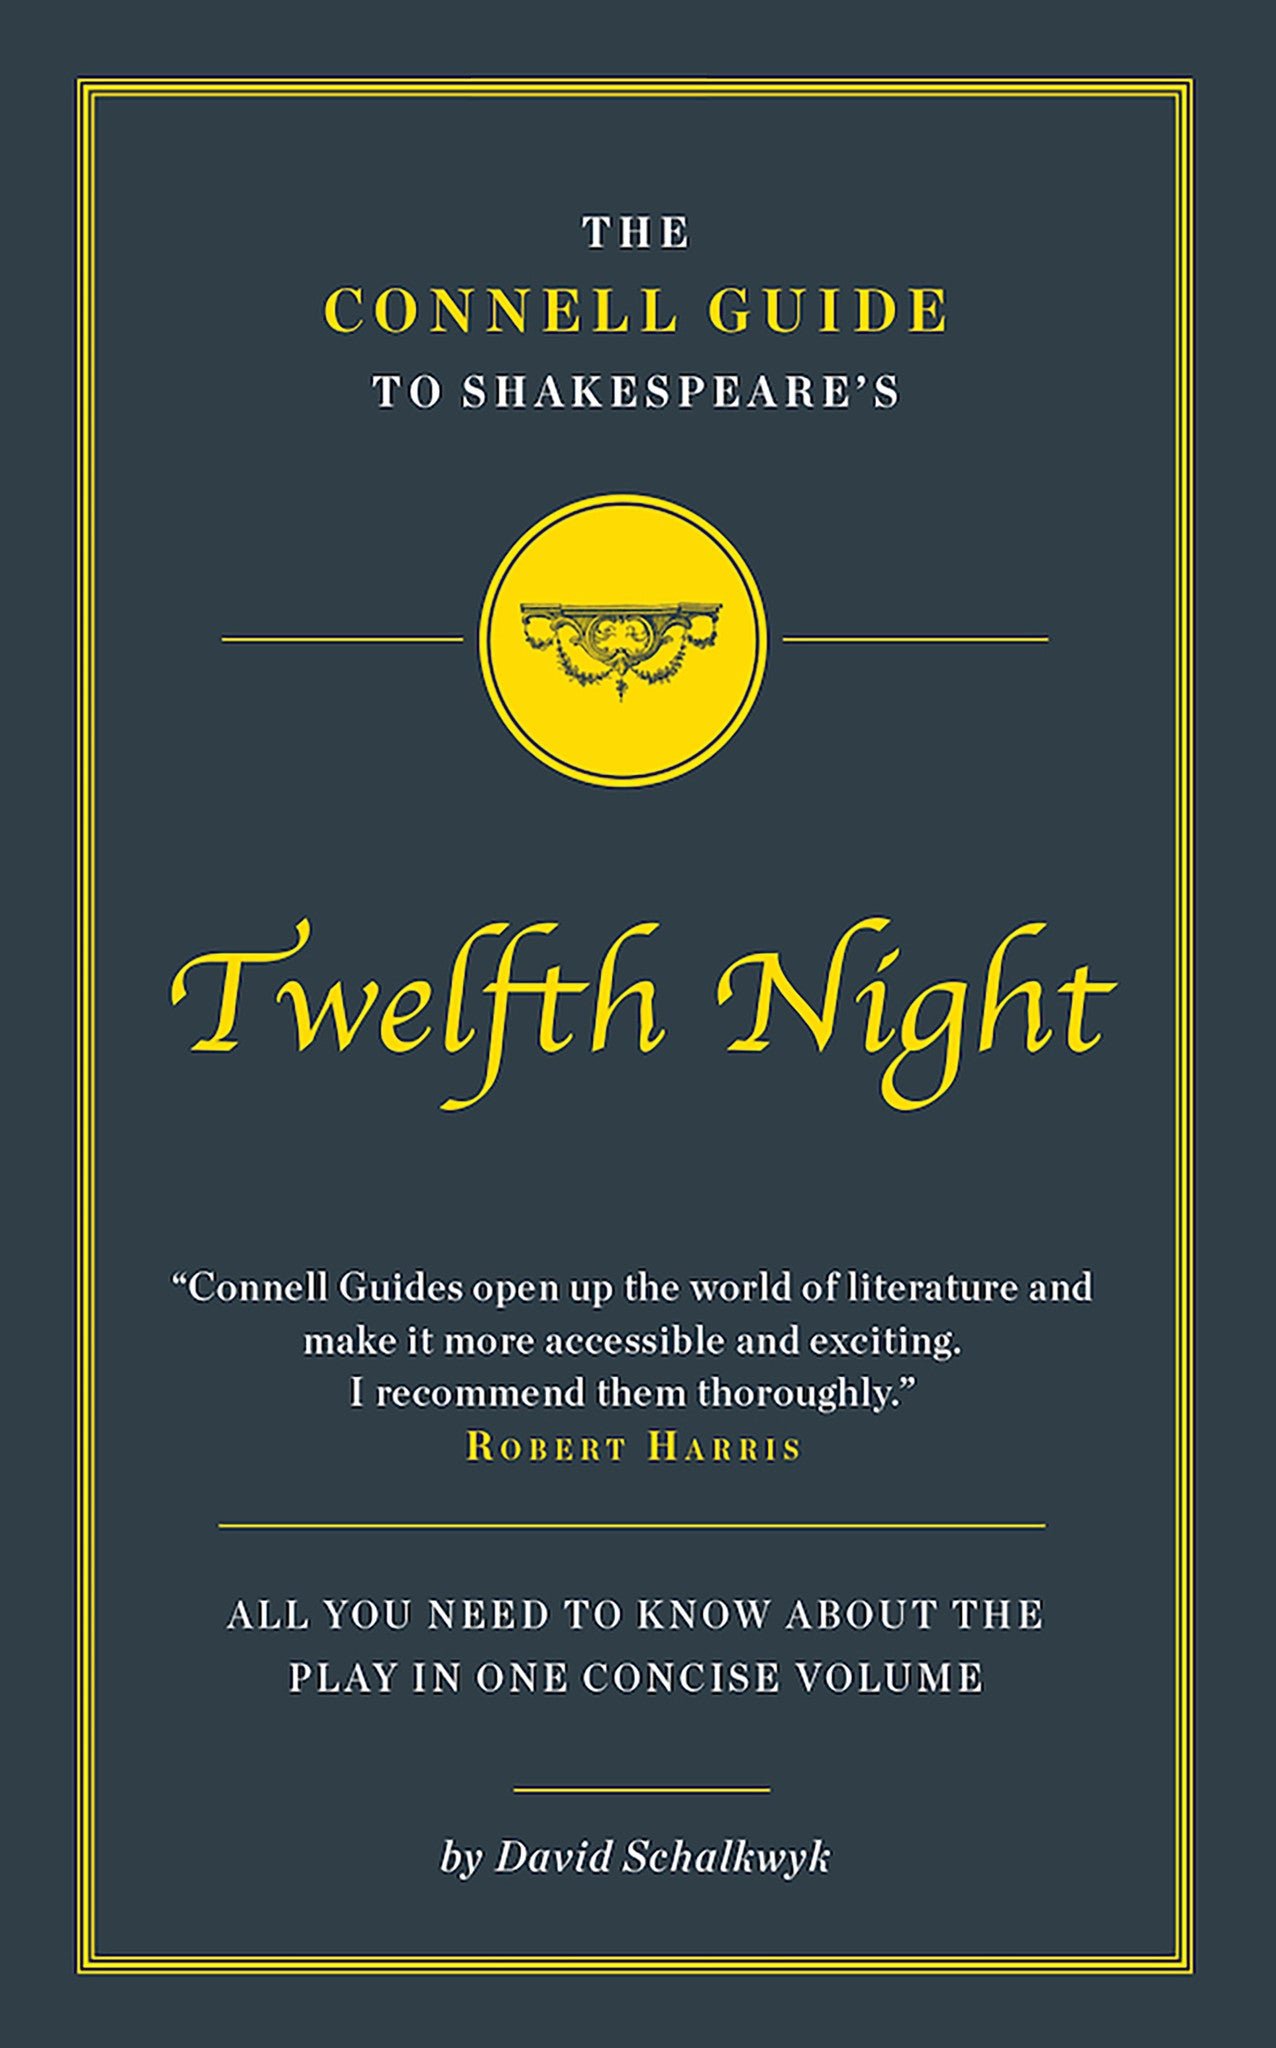 shakespeare s twelfth night study guide connell guides shakespeare s twelfth night study guide middot shakespeare s twelfth night study guide